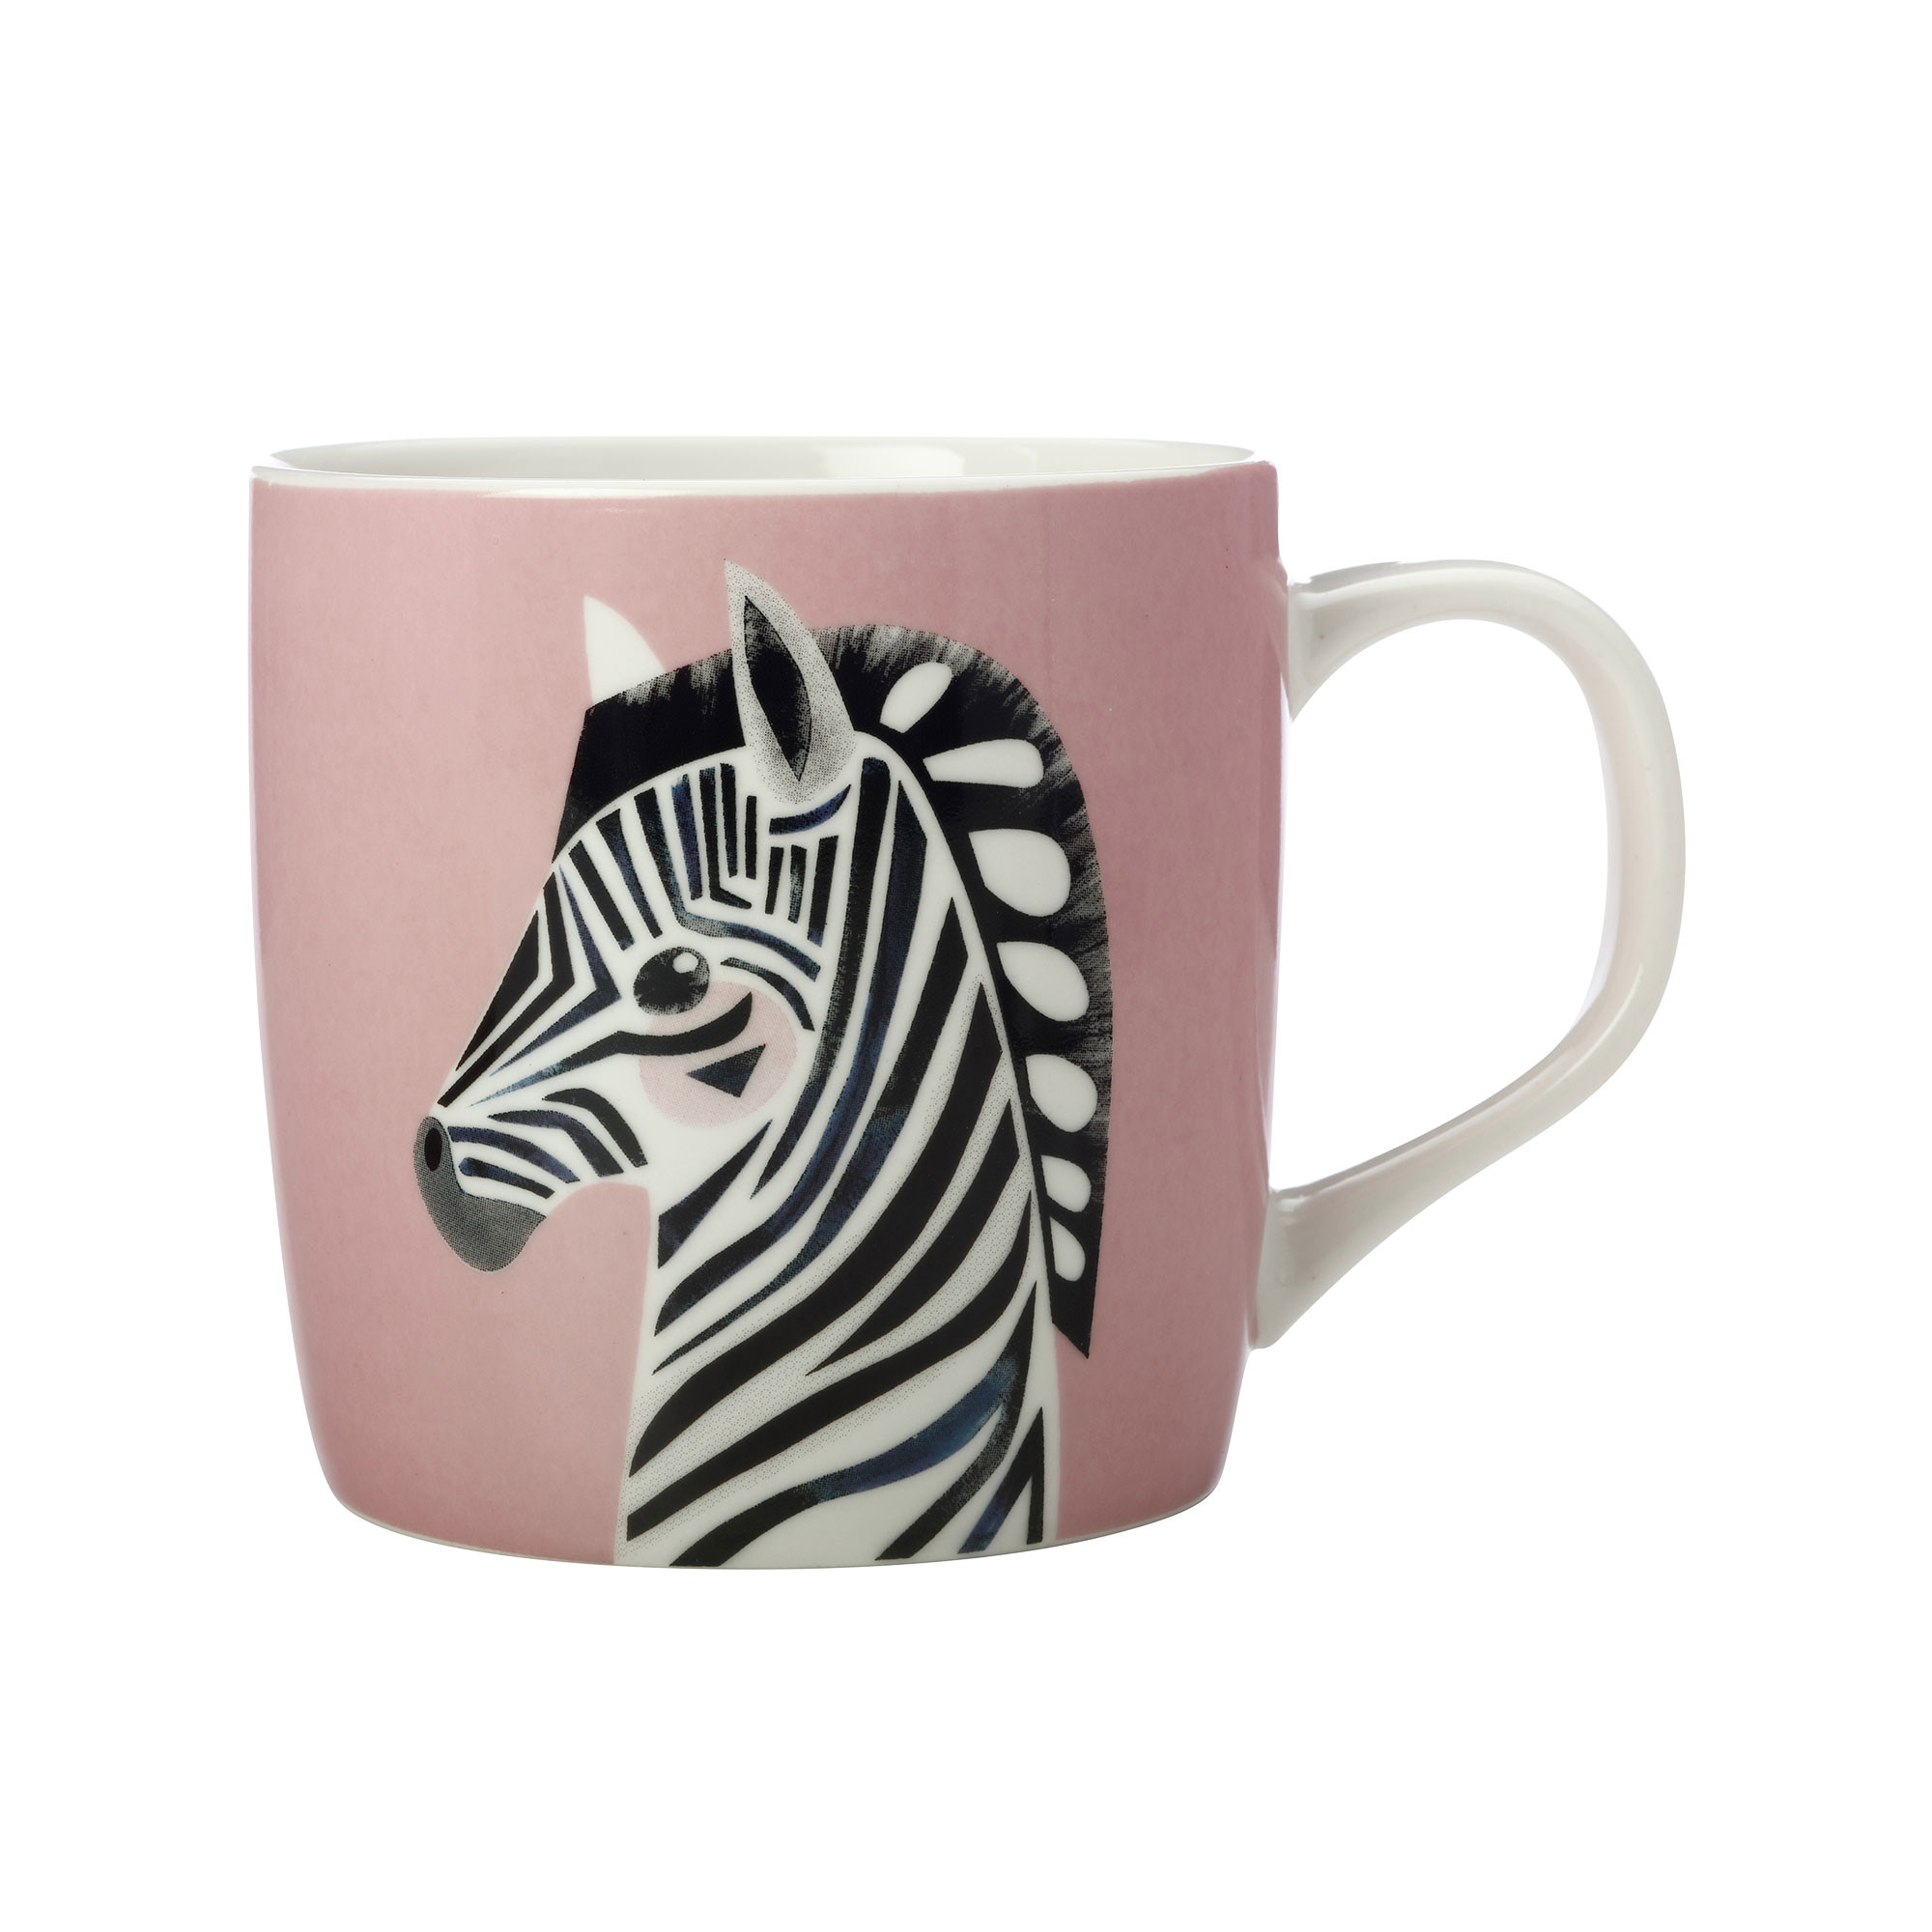 Maxwell & Williams Pete Cromer Wildlife Mug 375ml Zebra